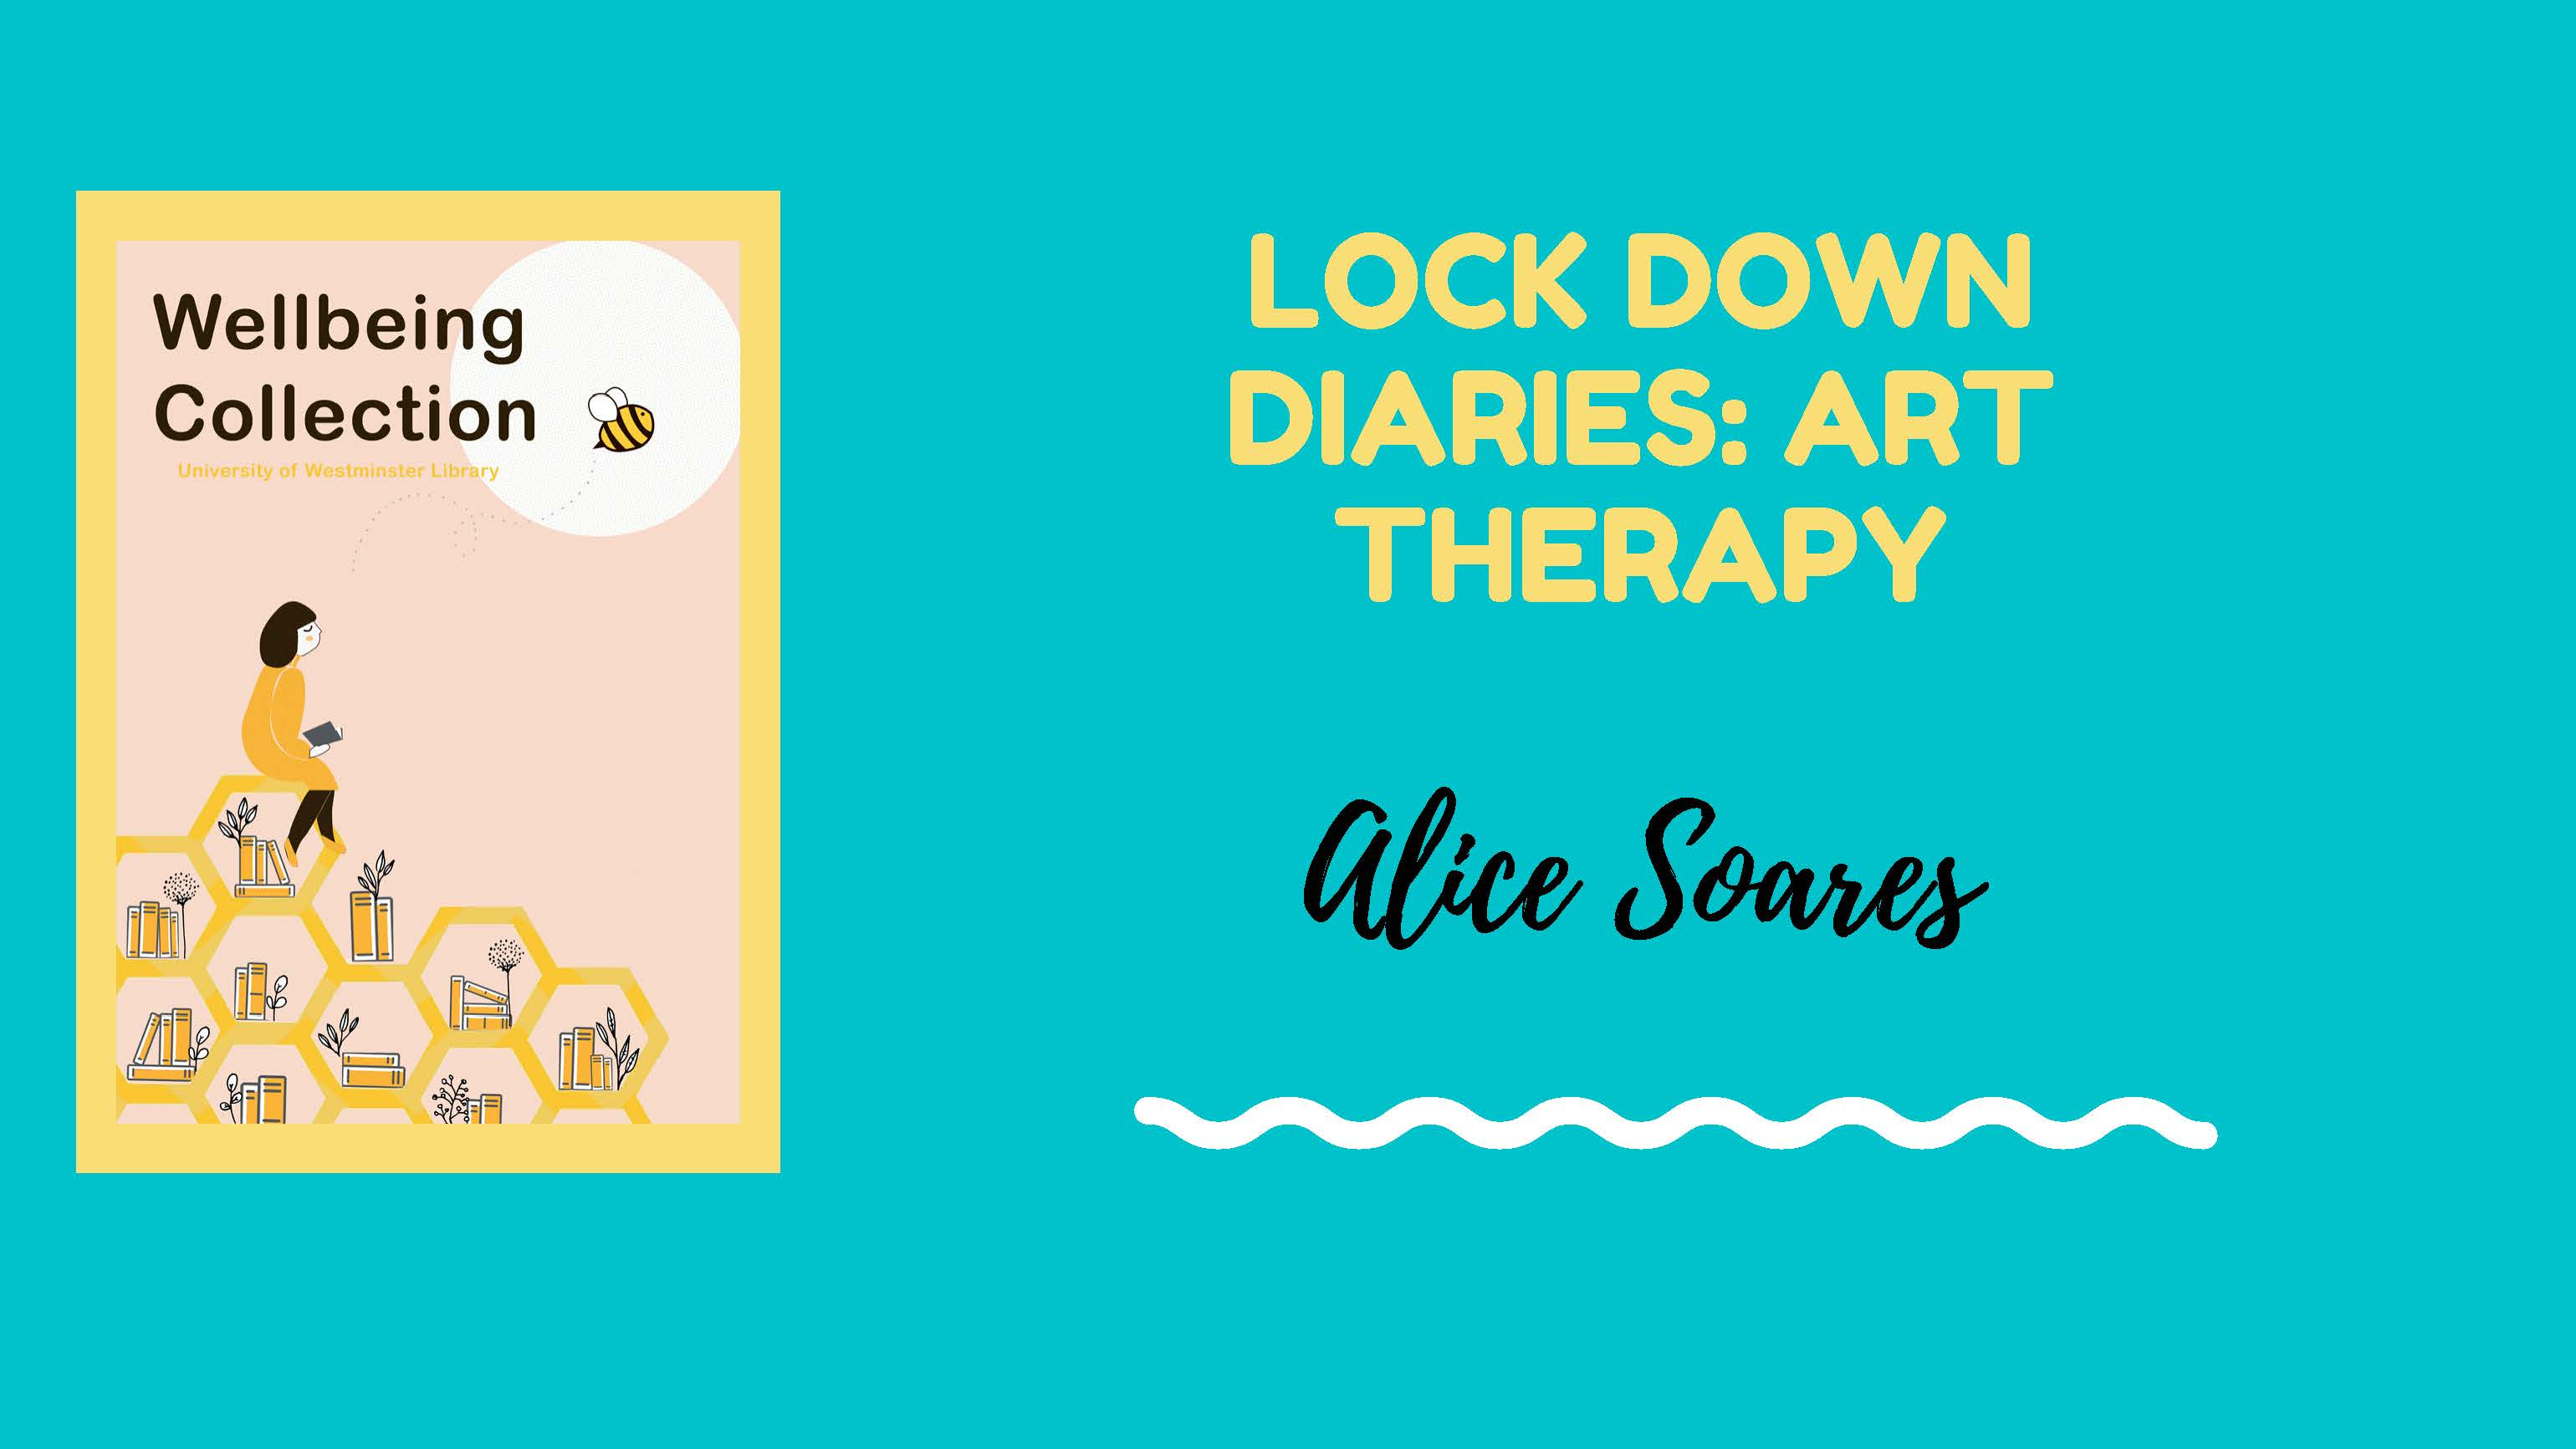 Lockdown Diary art therapy cover with Wellbeing logo